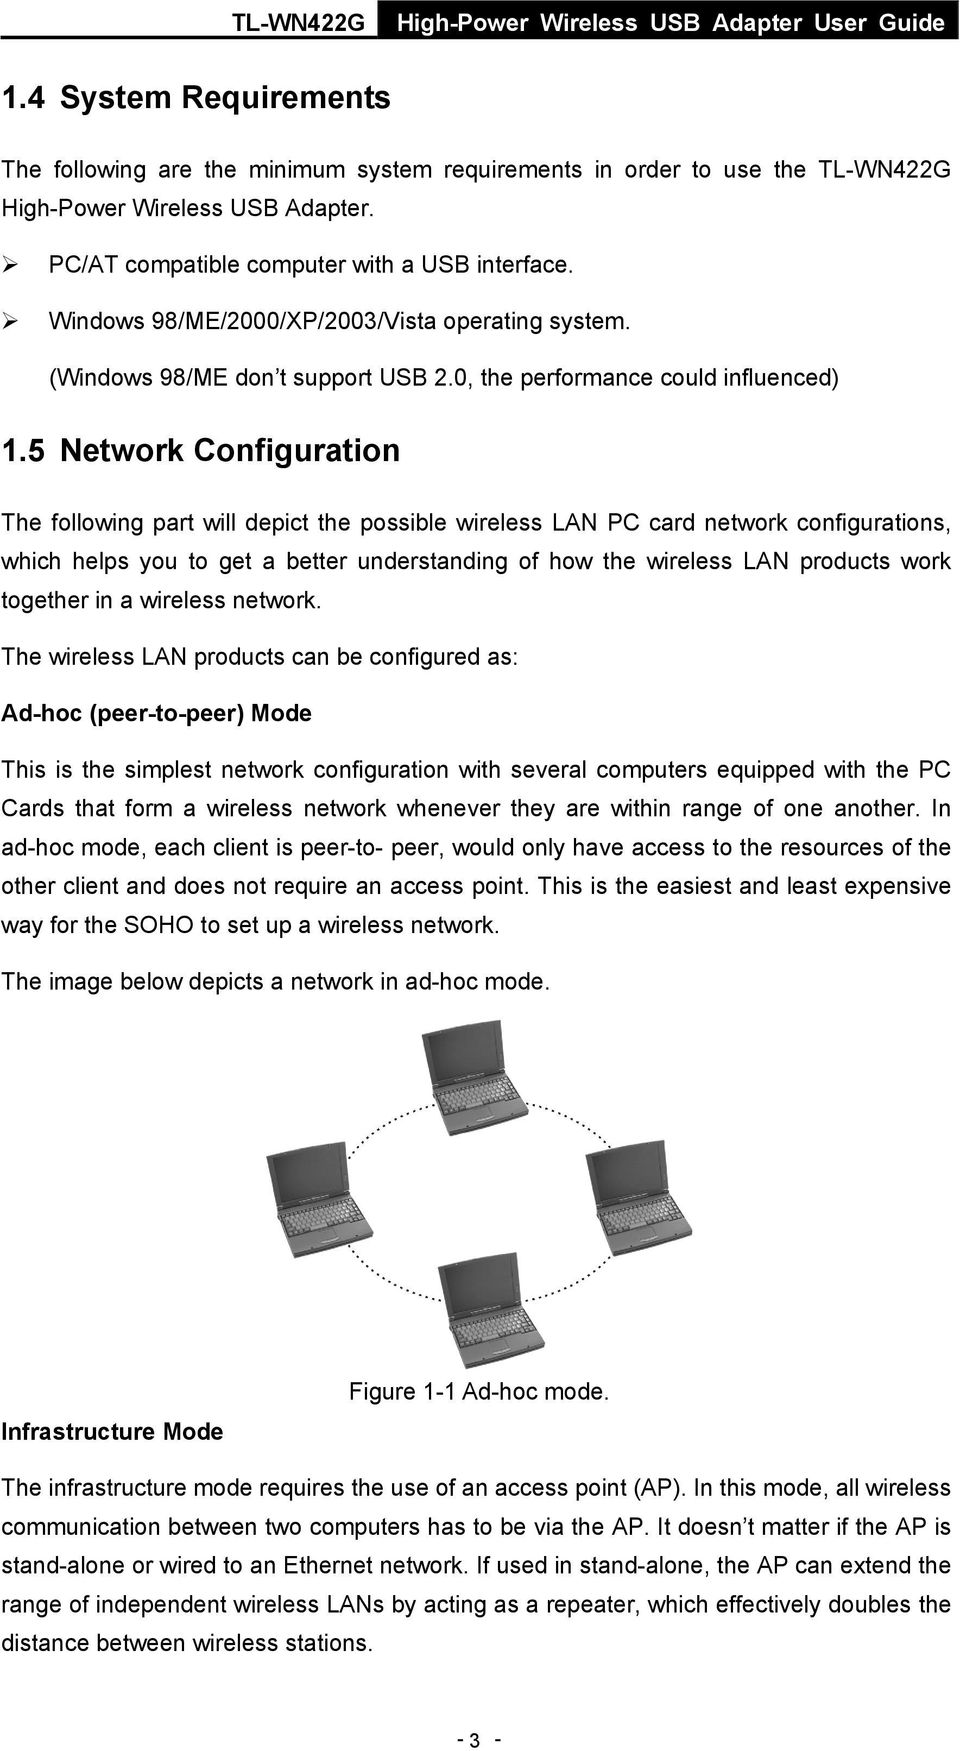 5 Network Configuration The following part will depict the possible wireless LAN PC card network configurations, which helps you to get a better understanding of how the wireless LAN products work